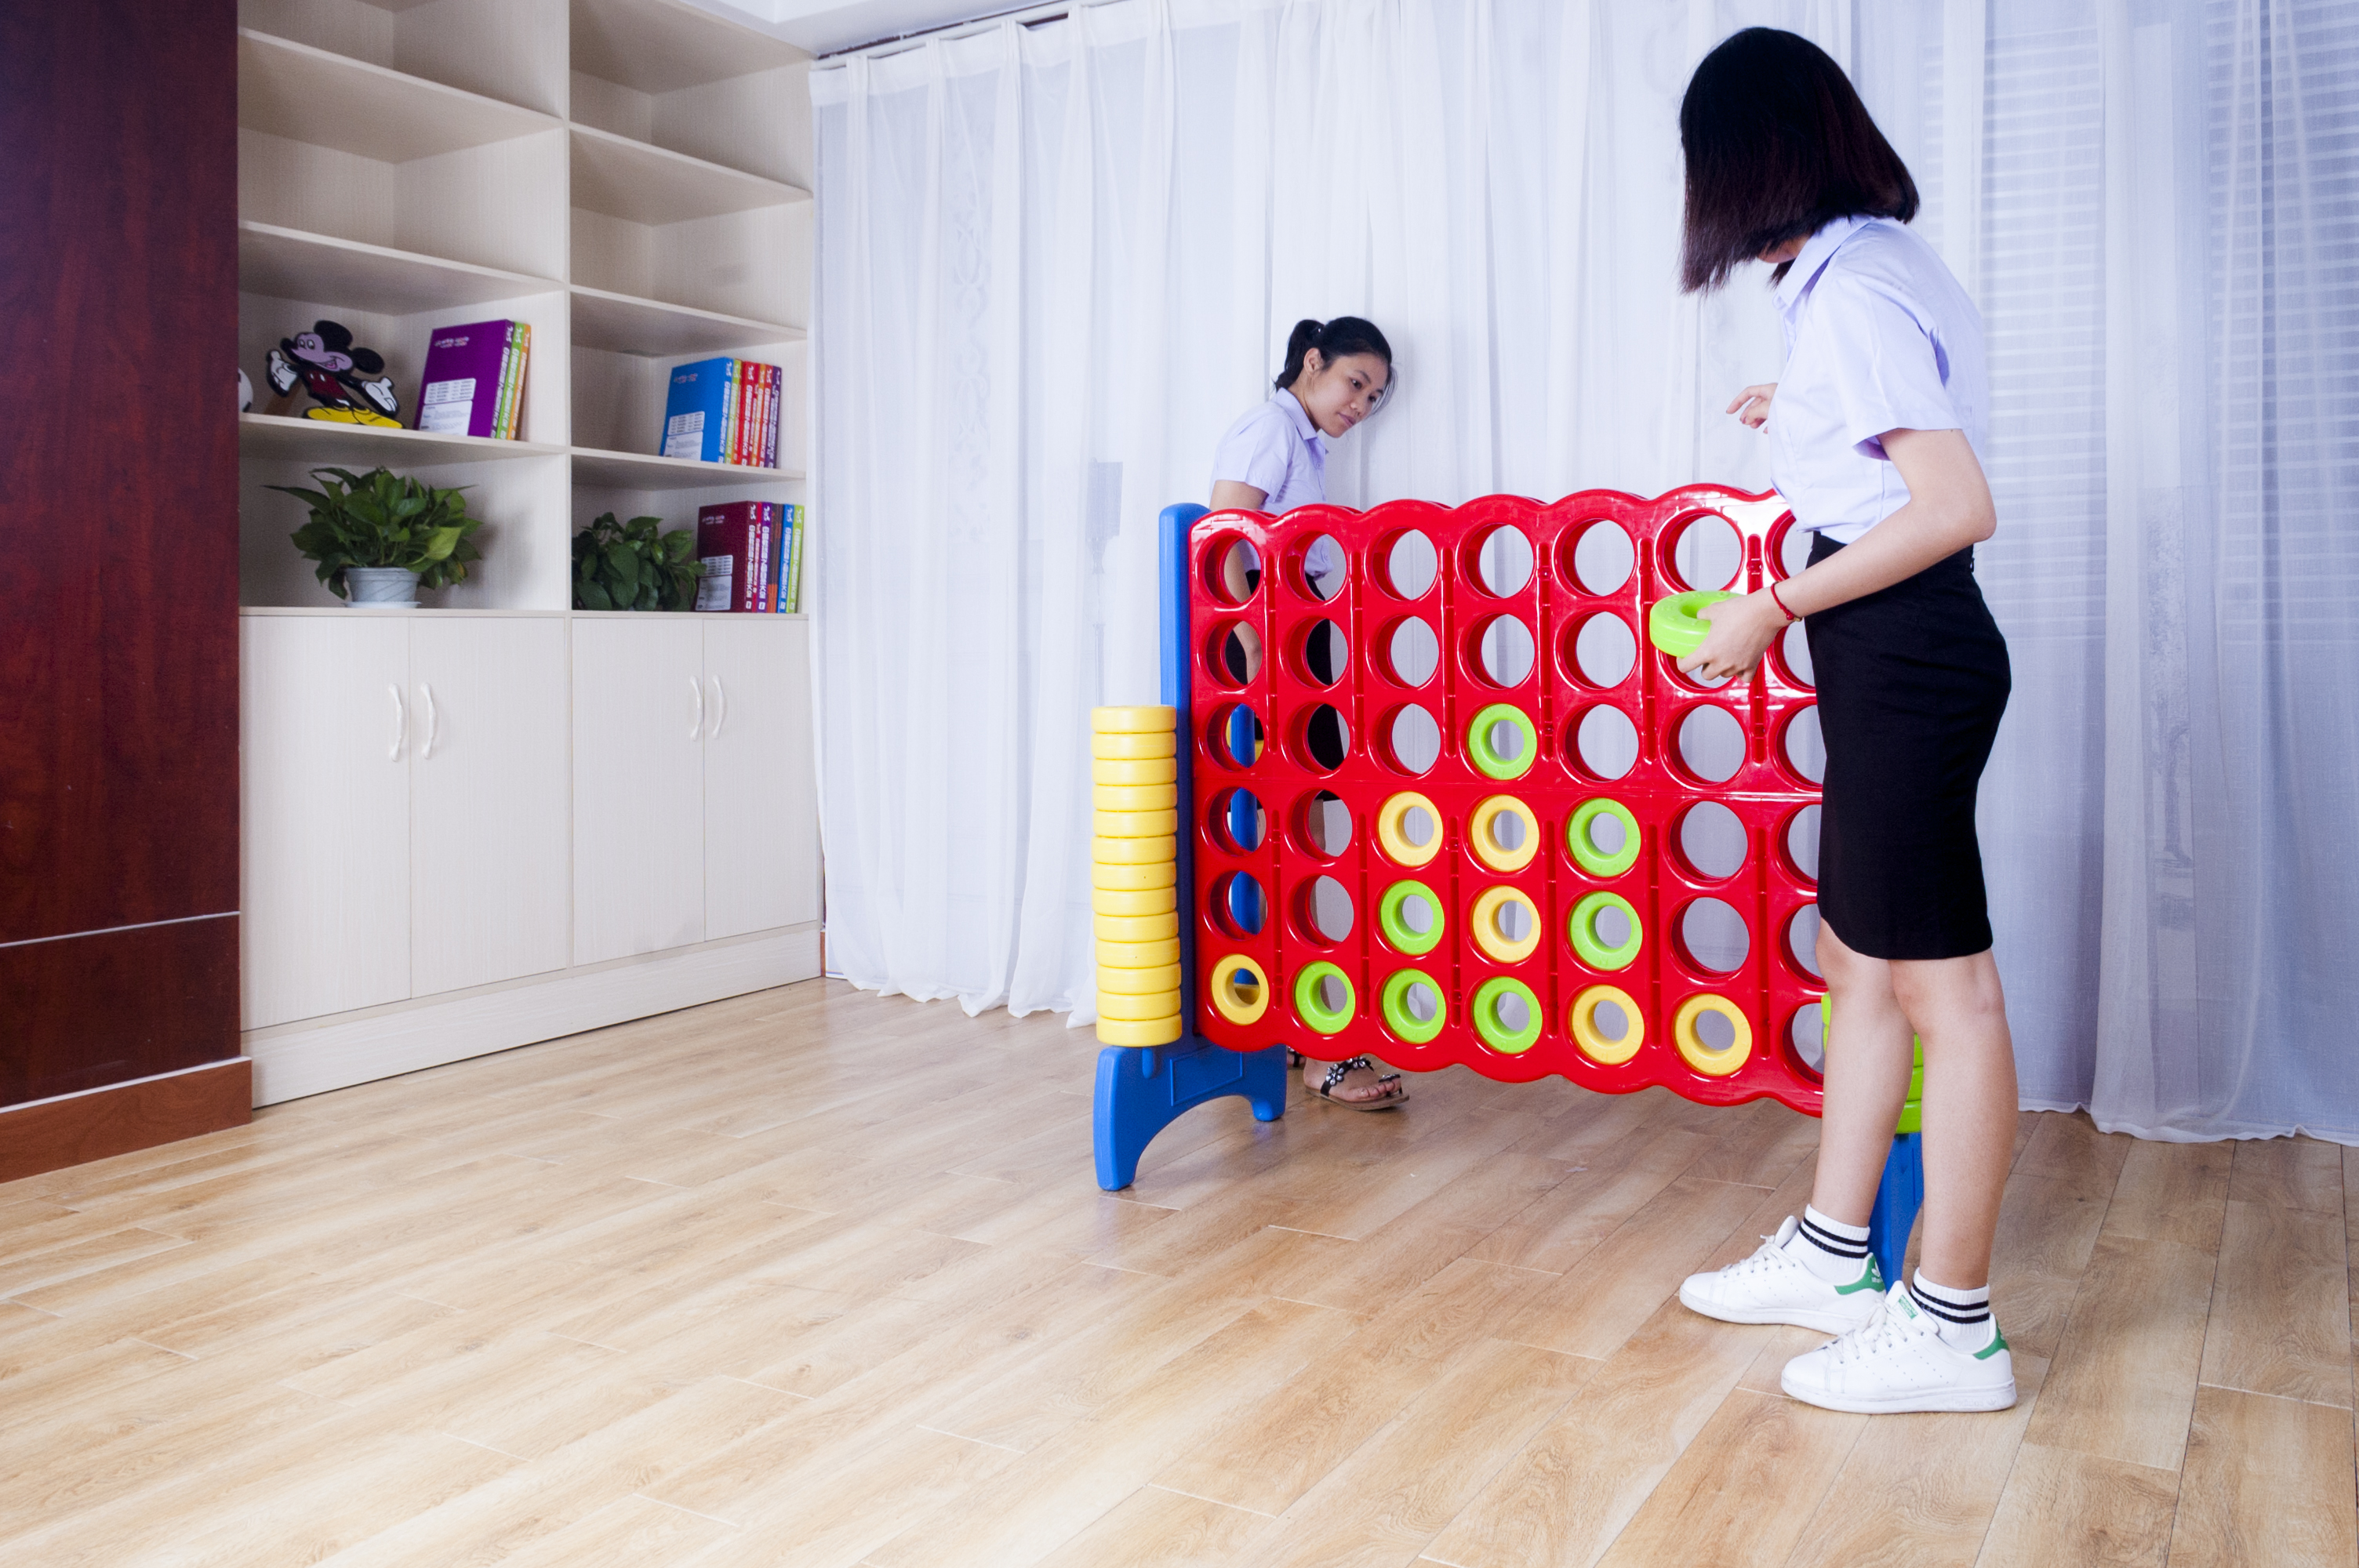 Bettaplay Giant connect 4